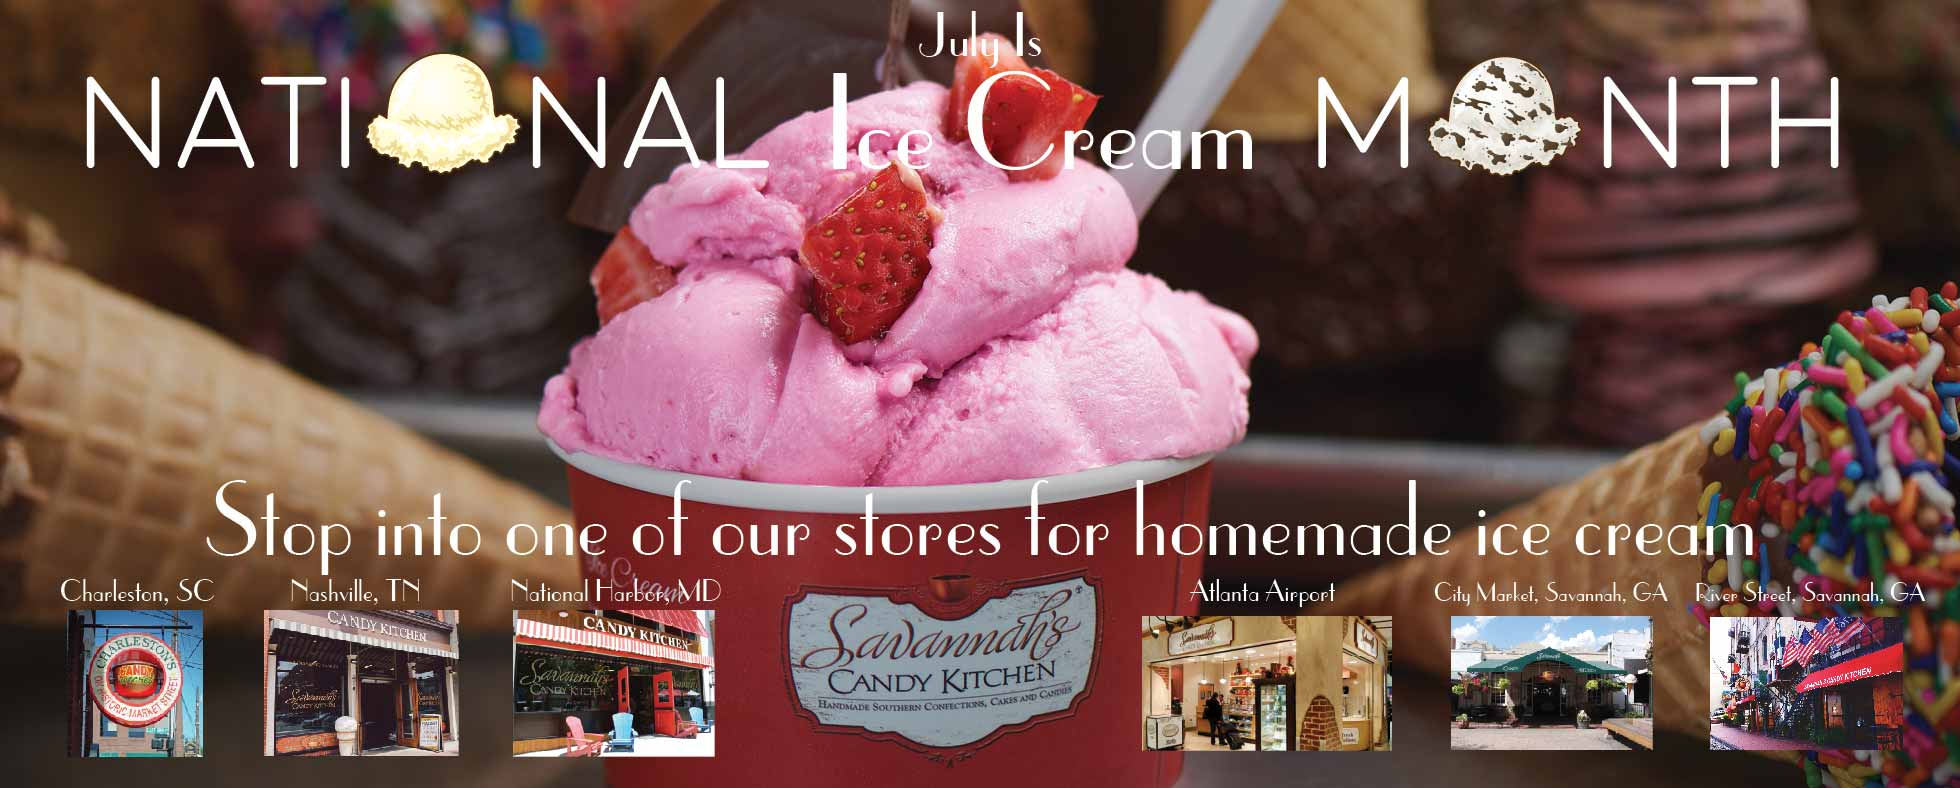 It's National Ice Cream Month!